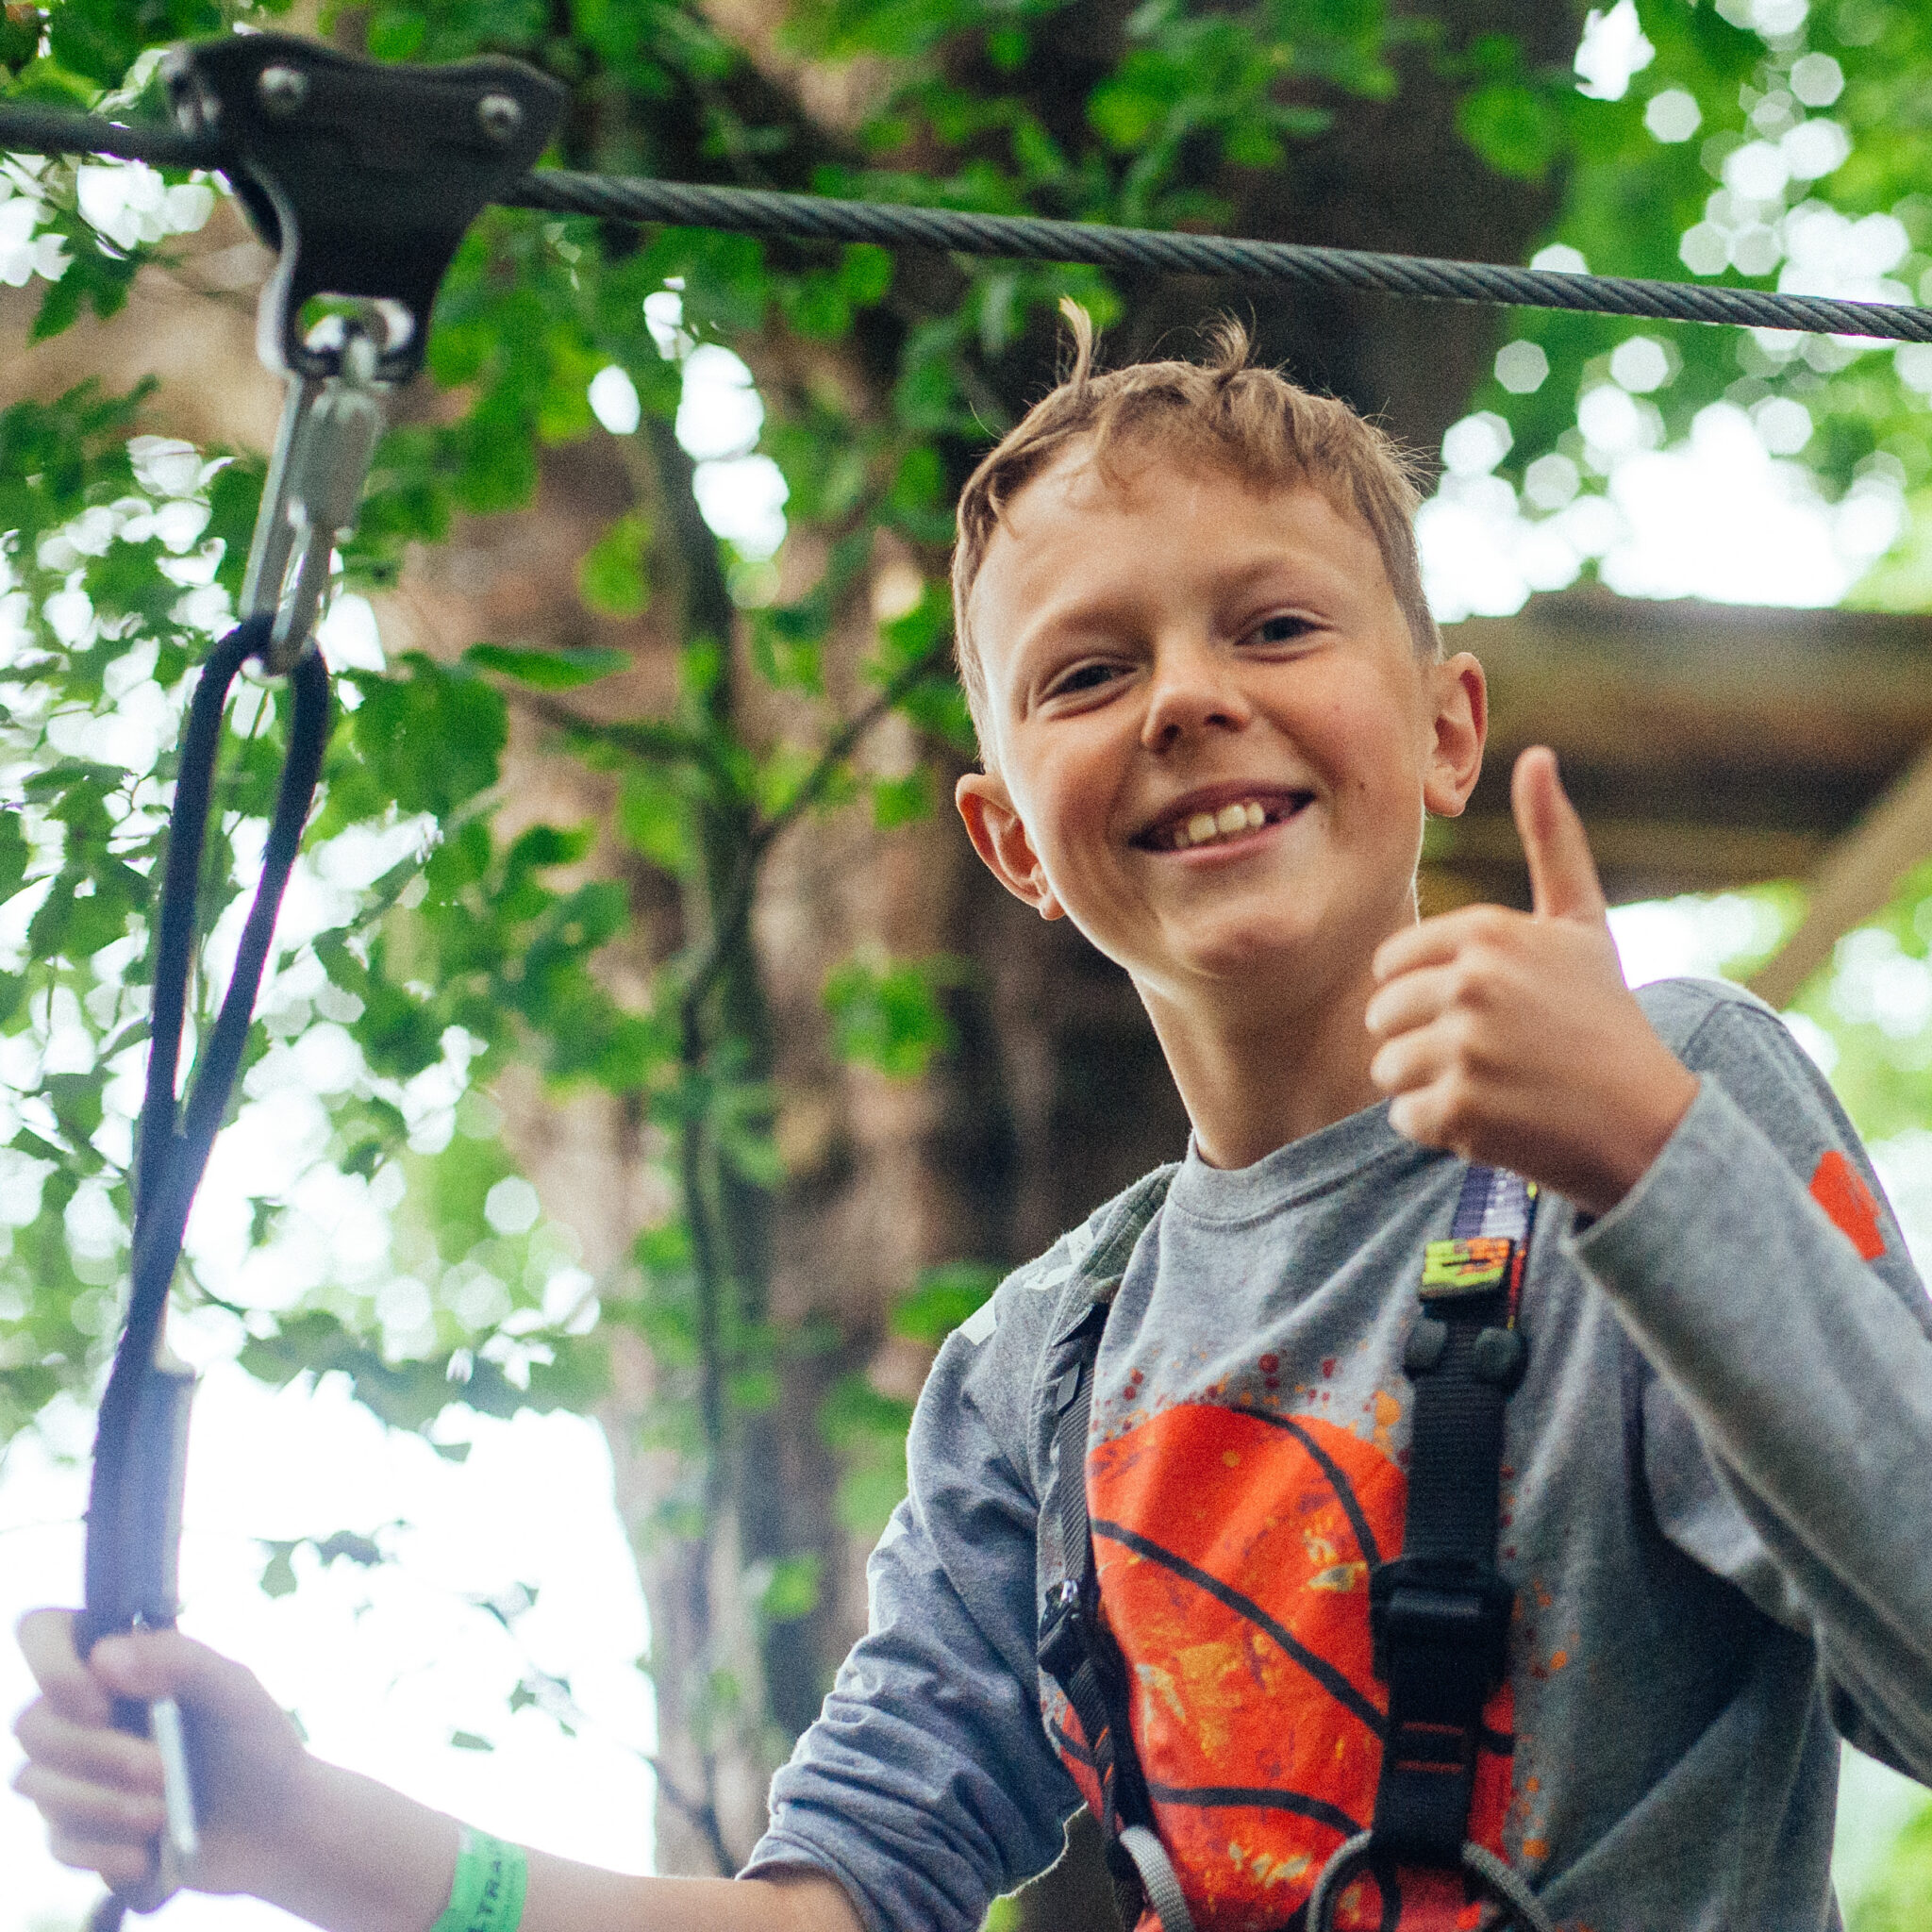 High_Ropes_16_highres-5247